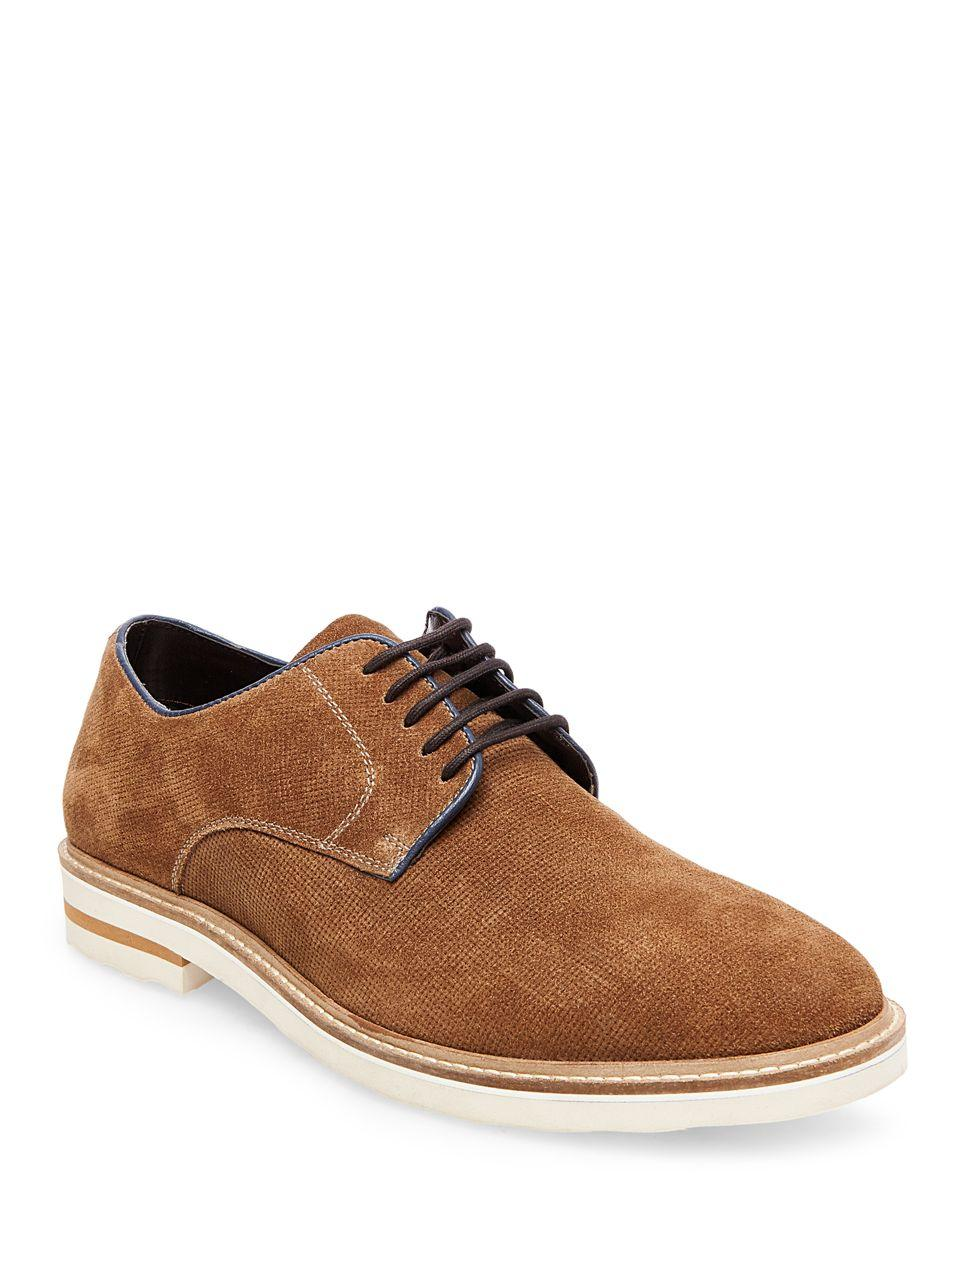 steve madden horten suede dress shoes in brown for lyst